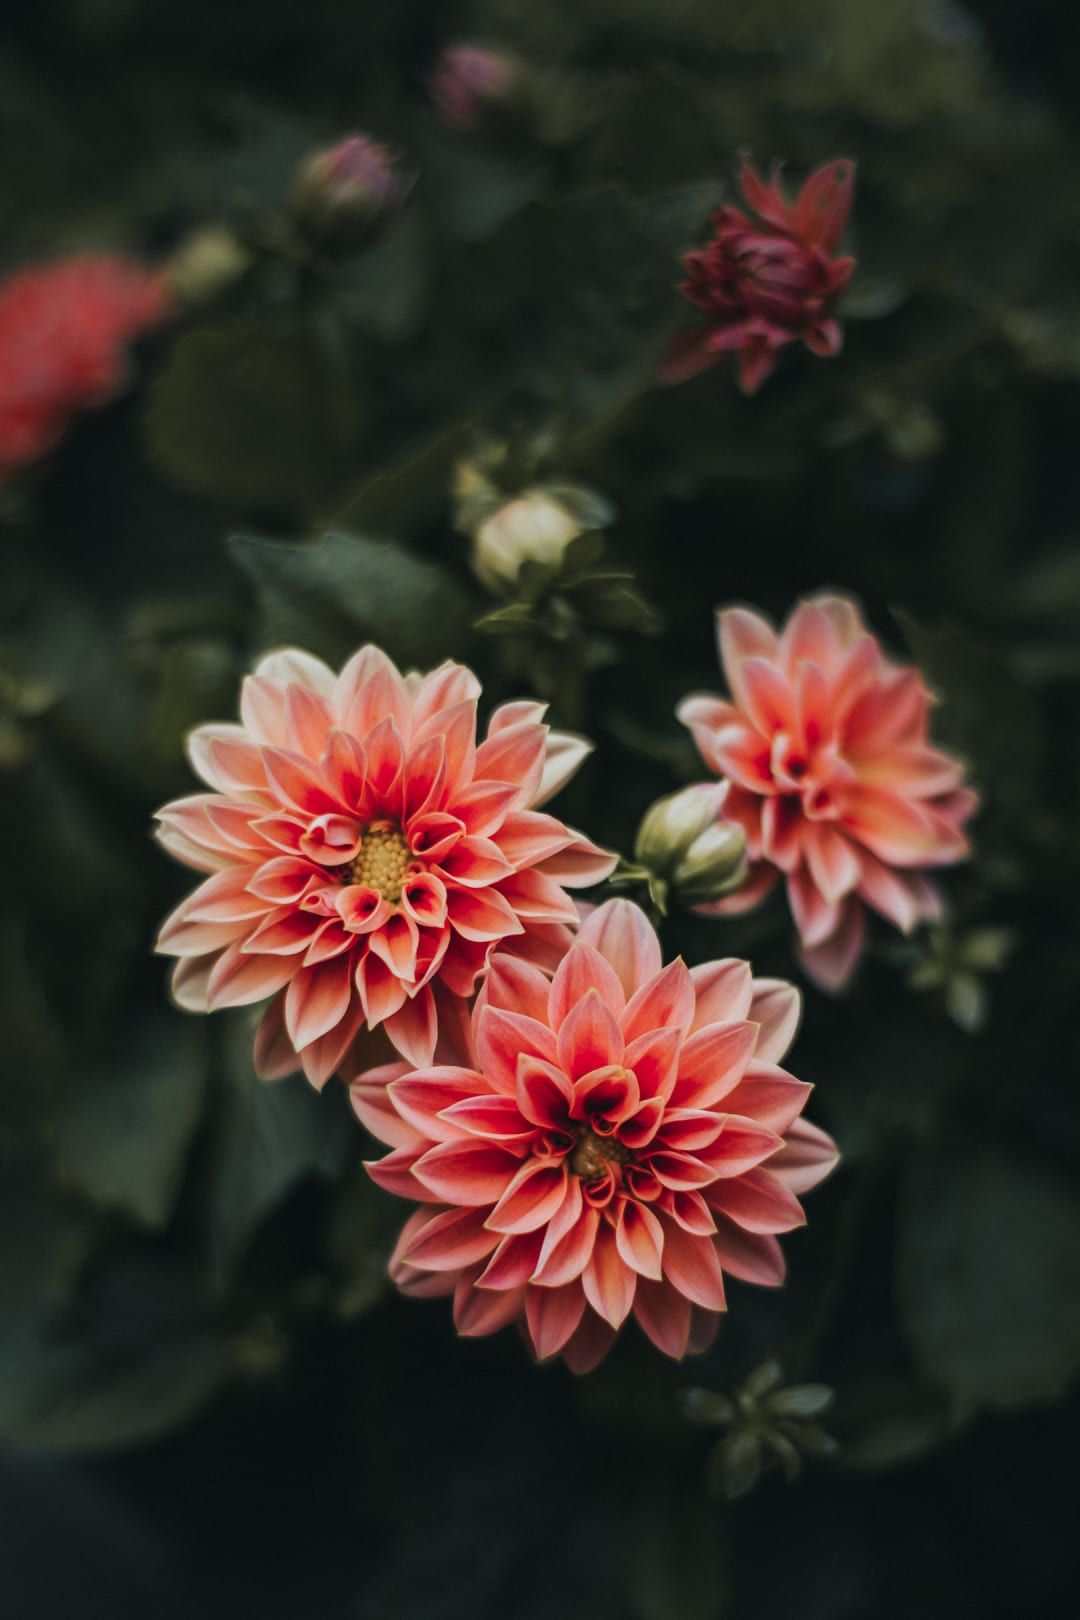 A moody photo of two vibrant pink dahlia flowers.